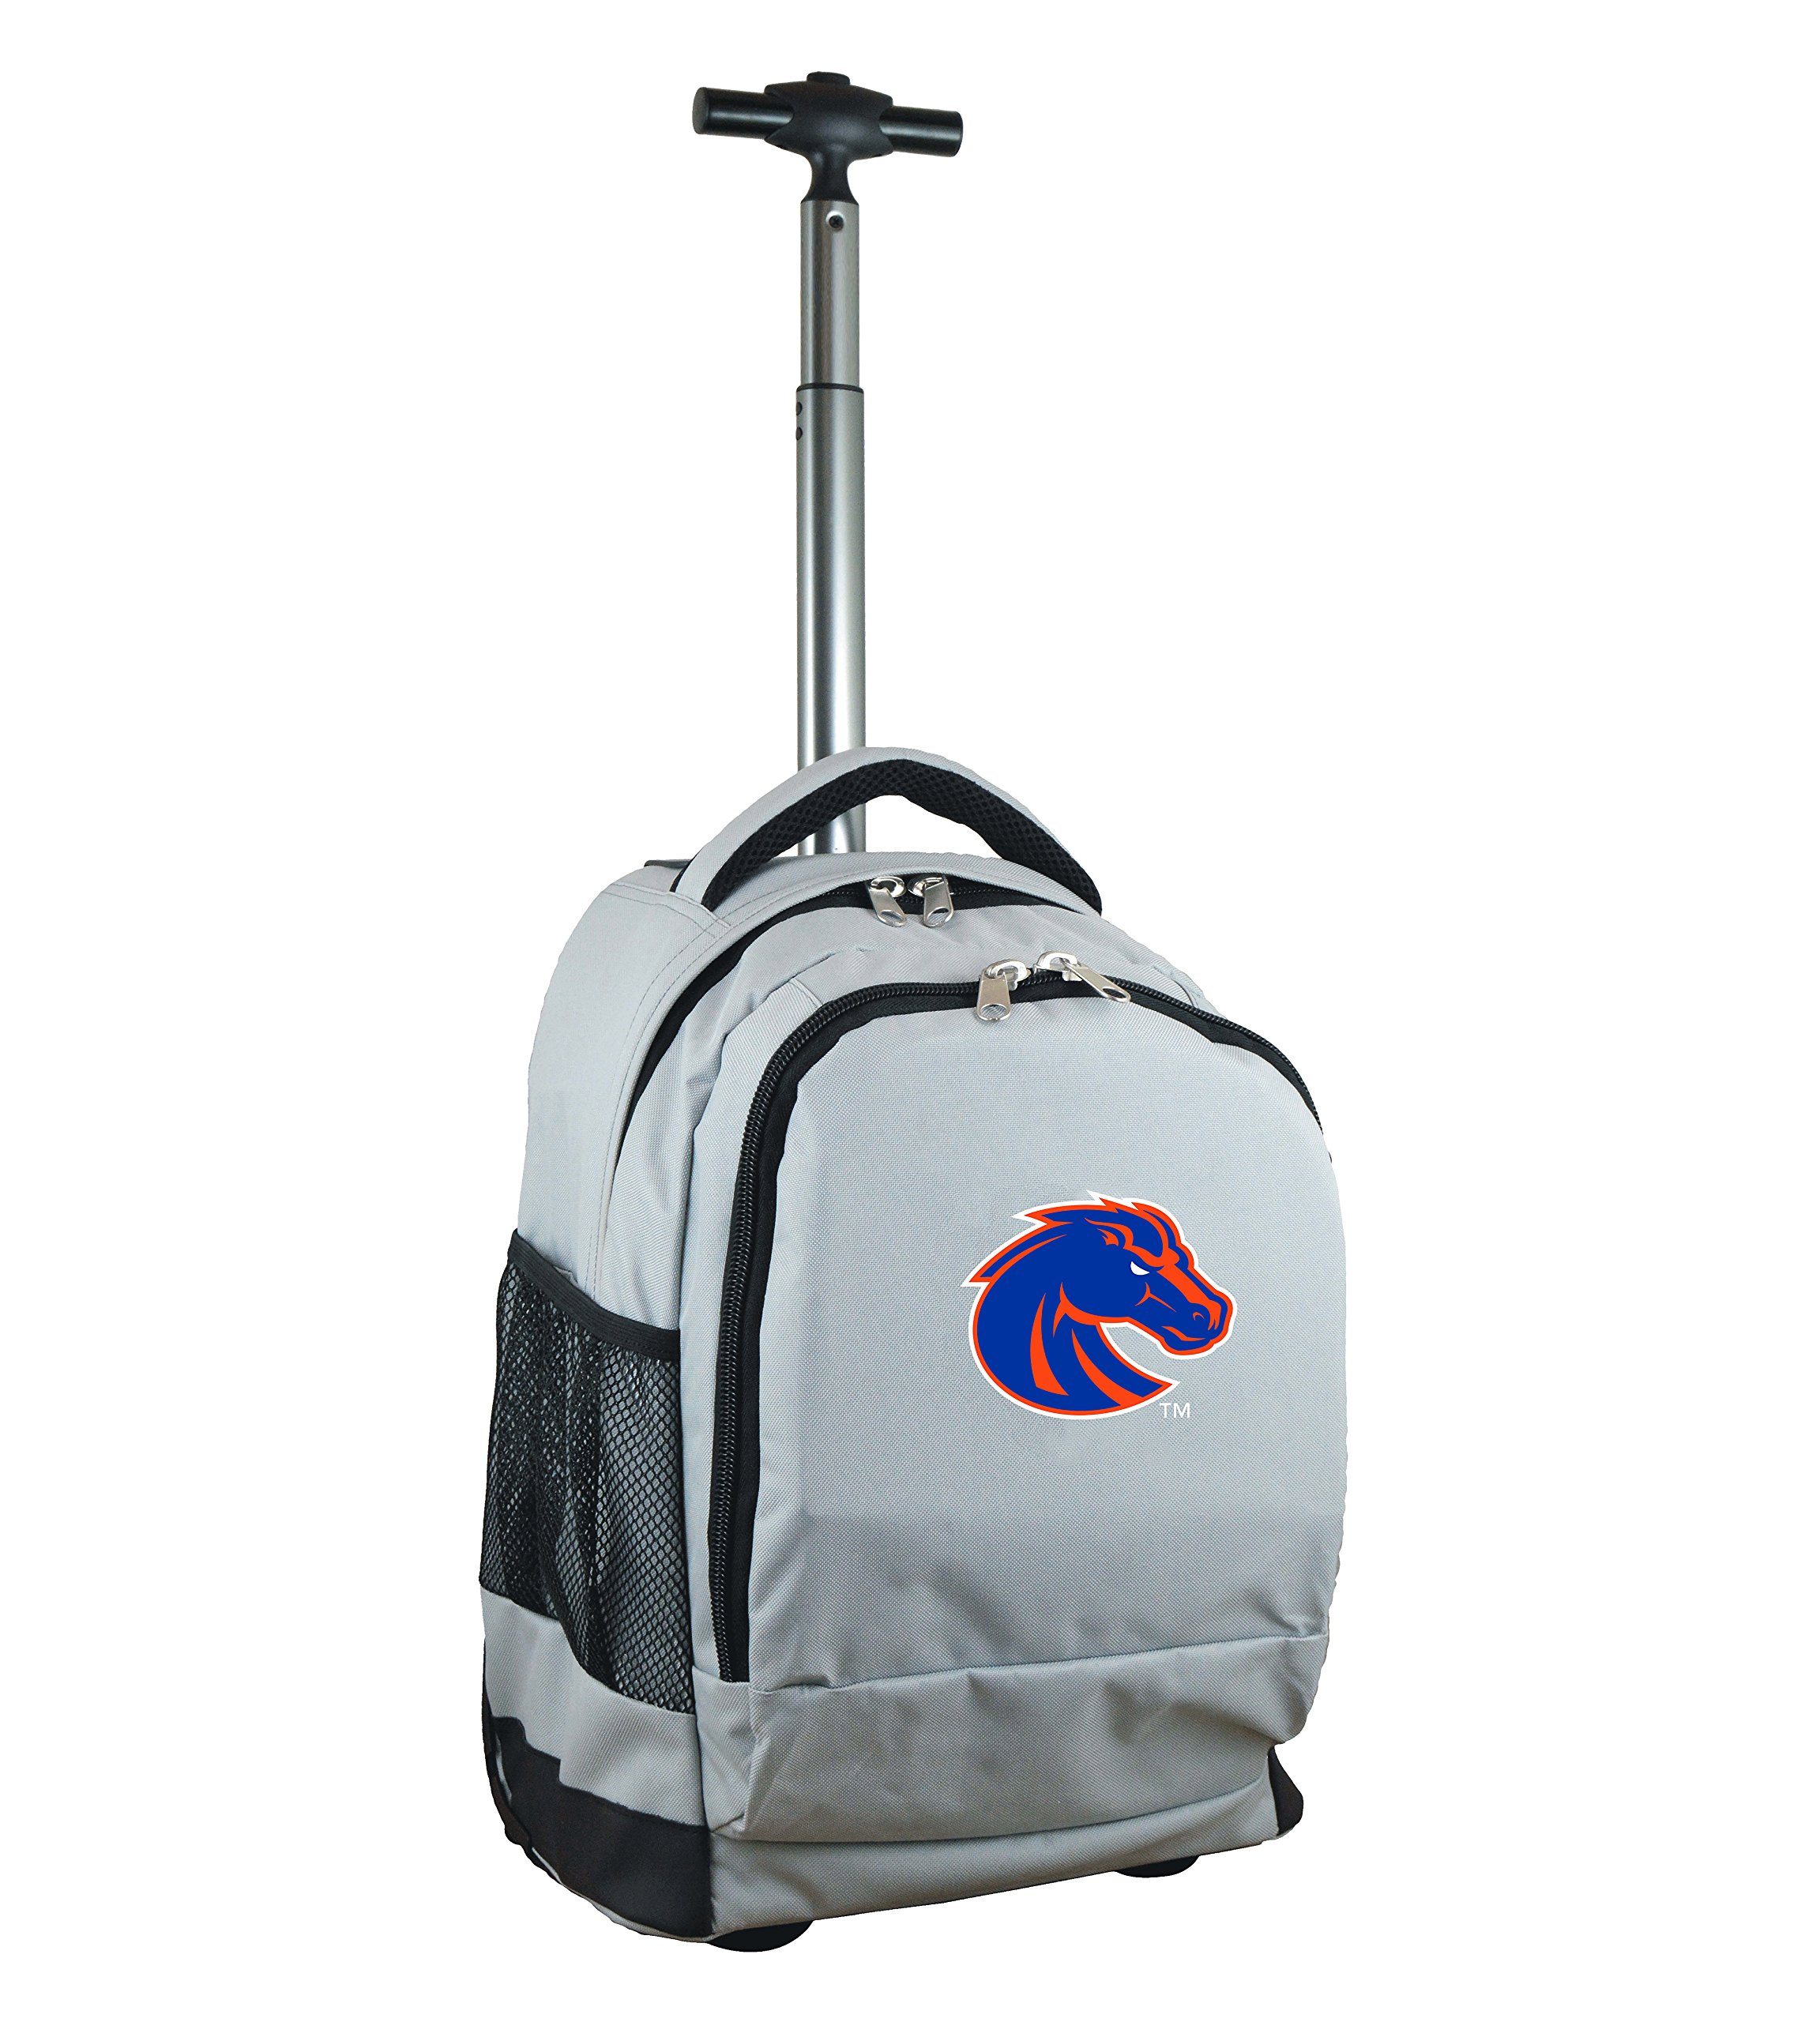 Denco NCAA Boise State Broncos Expedition Wheeled Backpack, 19-inches, Grey